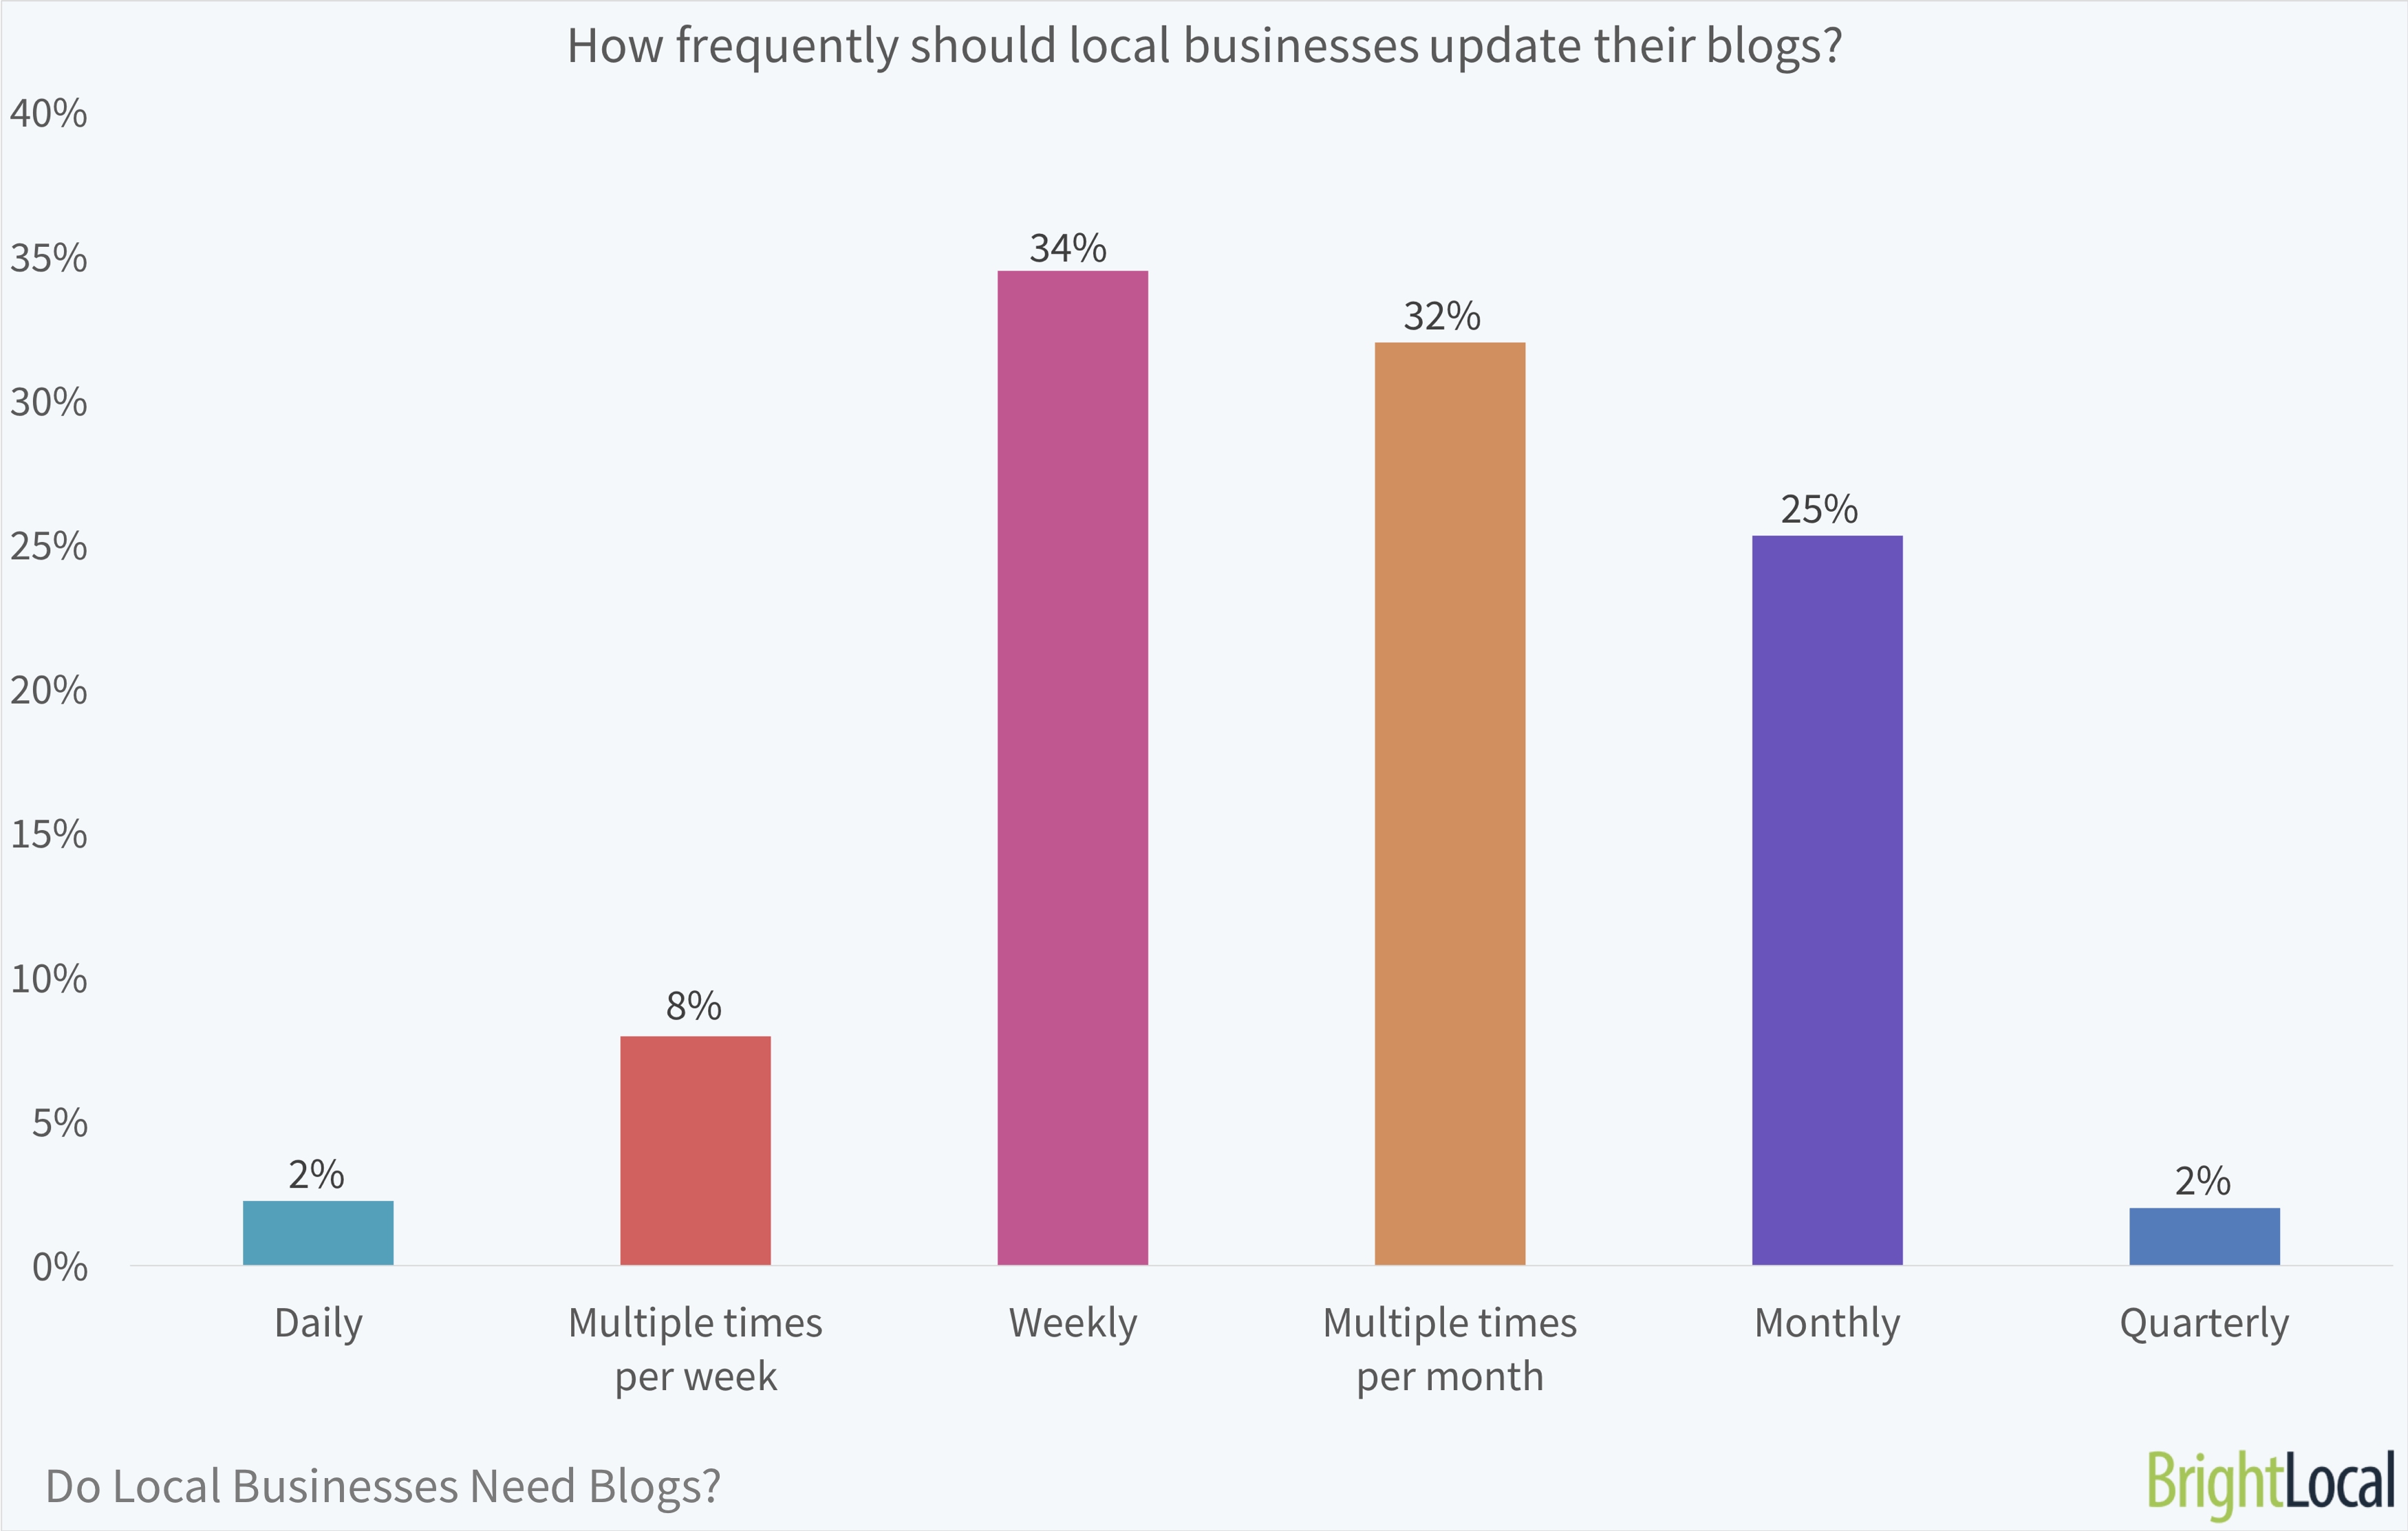 How frequently should local businesses update their blogs? | BrightLocal Local Business Blog Survey